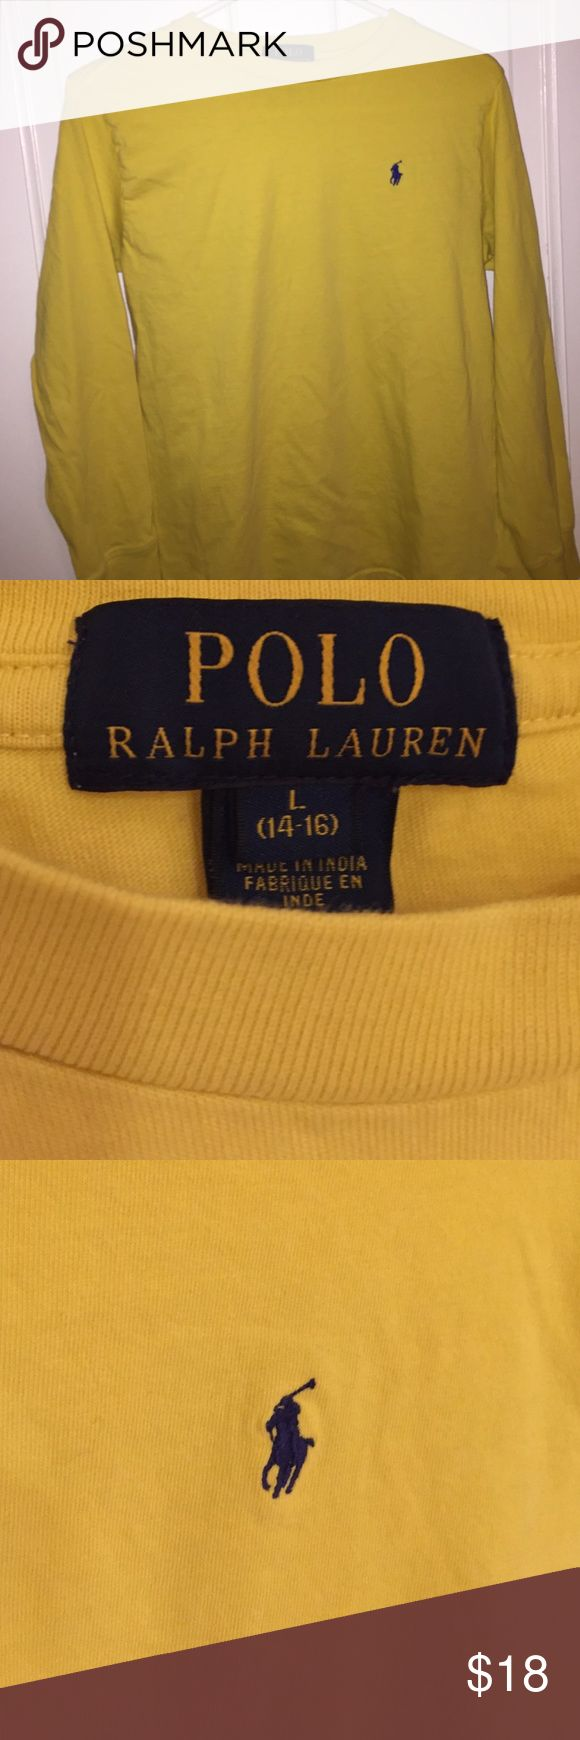 Yellow Long-Sleeve Polo Shirt by Ralph Lauren Only been worn twice! It's a boys yellow t-shirt from the Polo Ralph Lauren Outlet in Lee, MA. Great quality with no stains or other damages. Leave a comment if you have a question. Polo by Ralph Lauren Shirts & Tops Tees - Long Sleeve